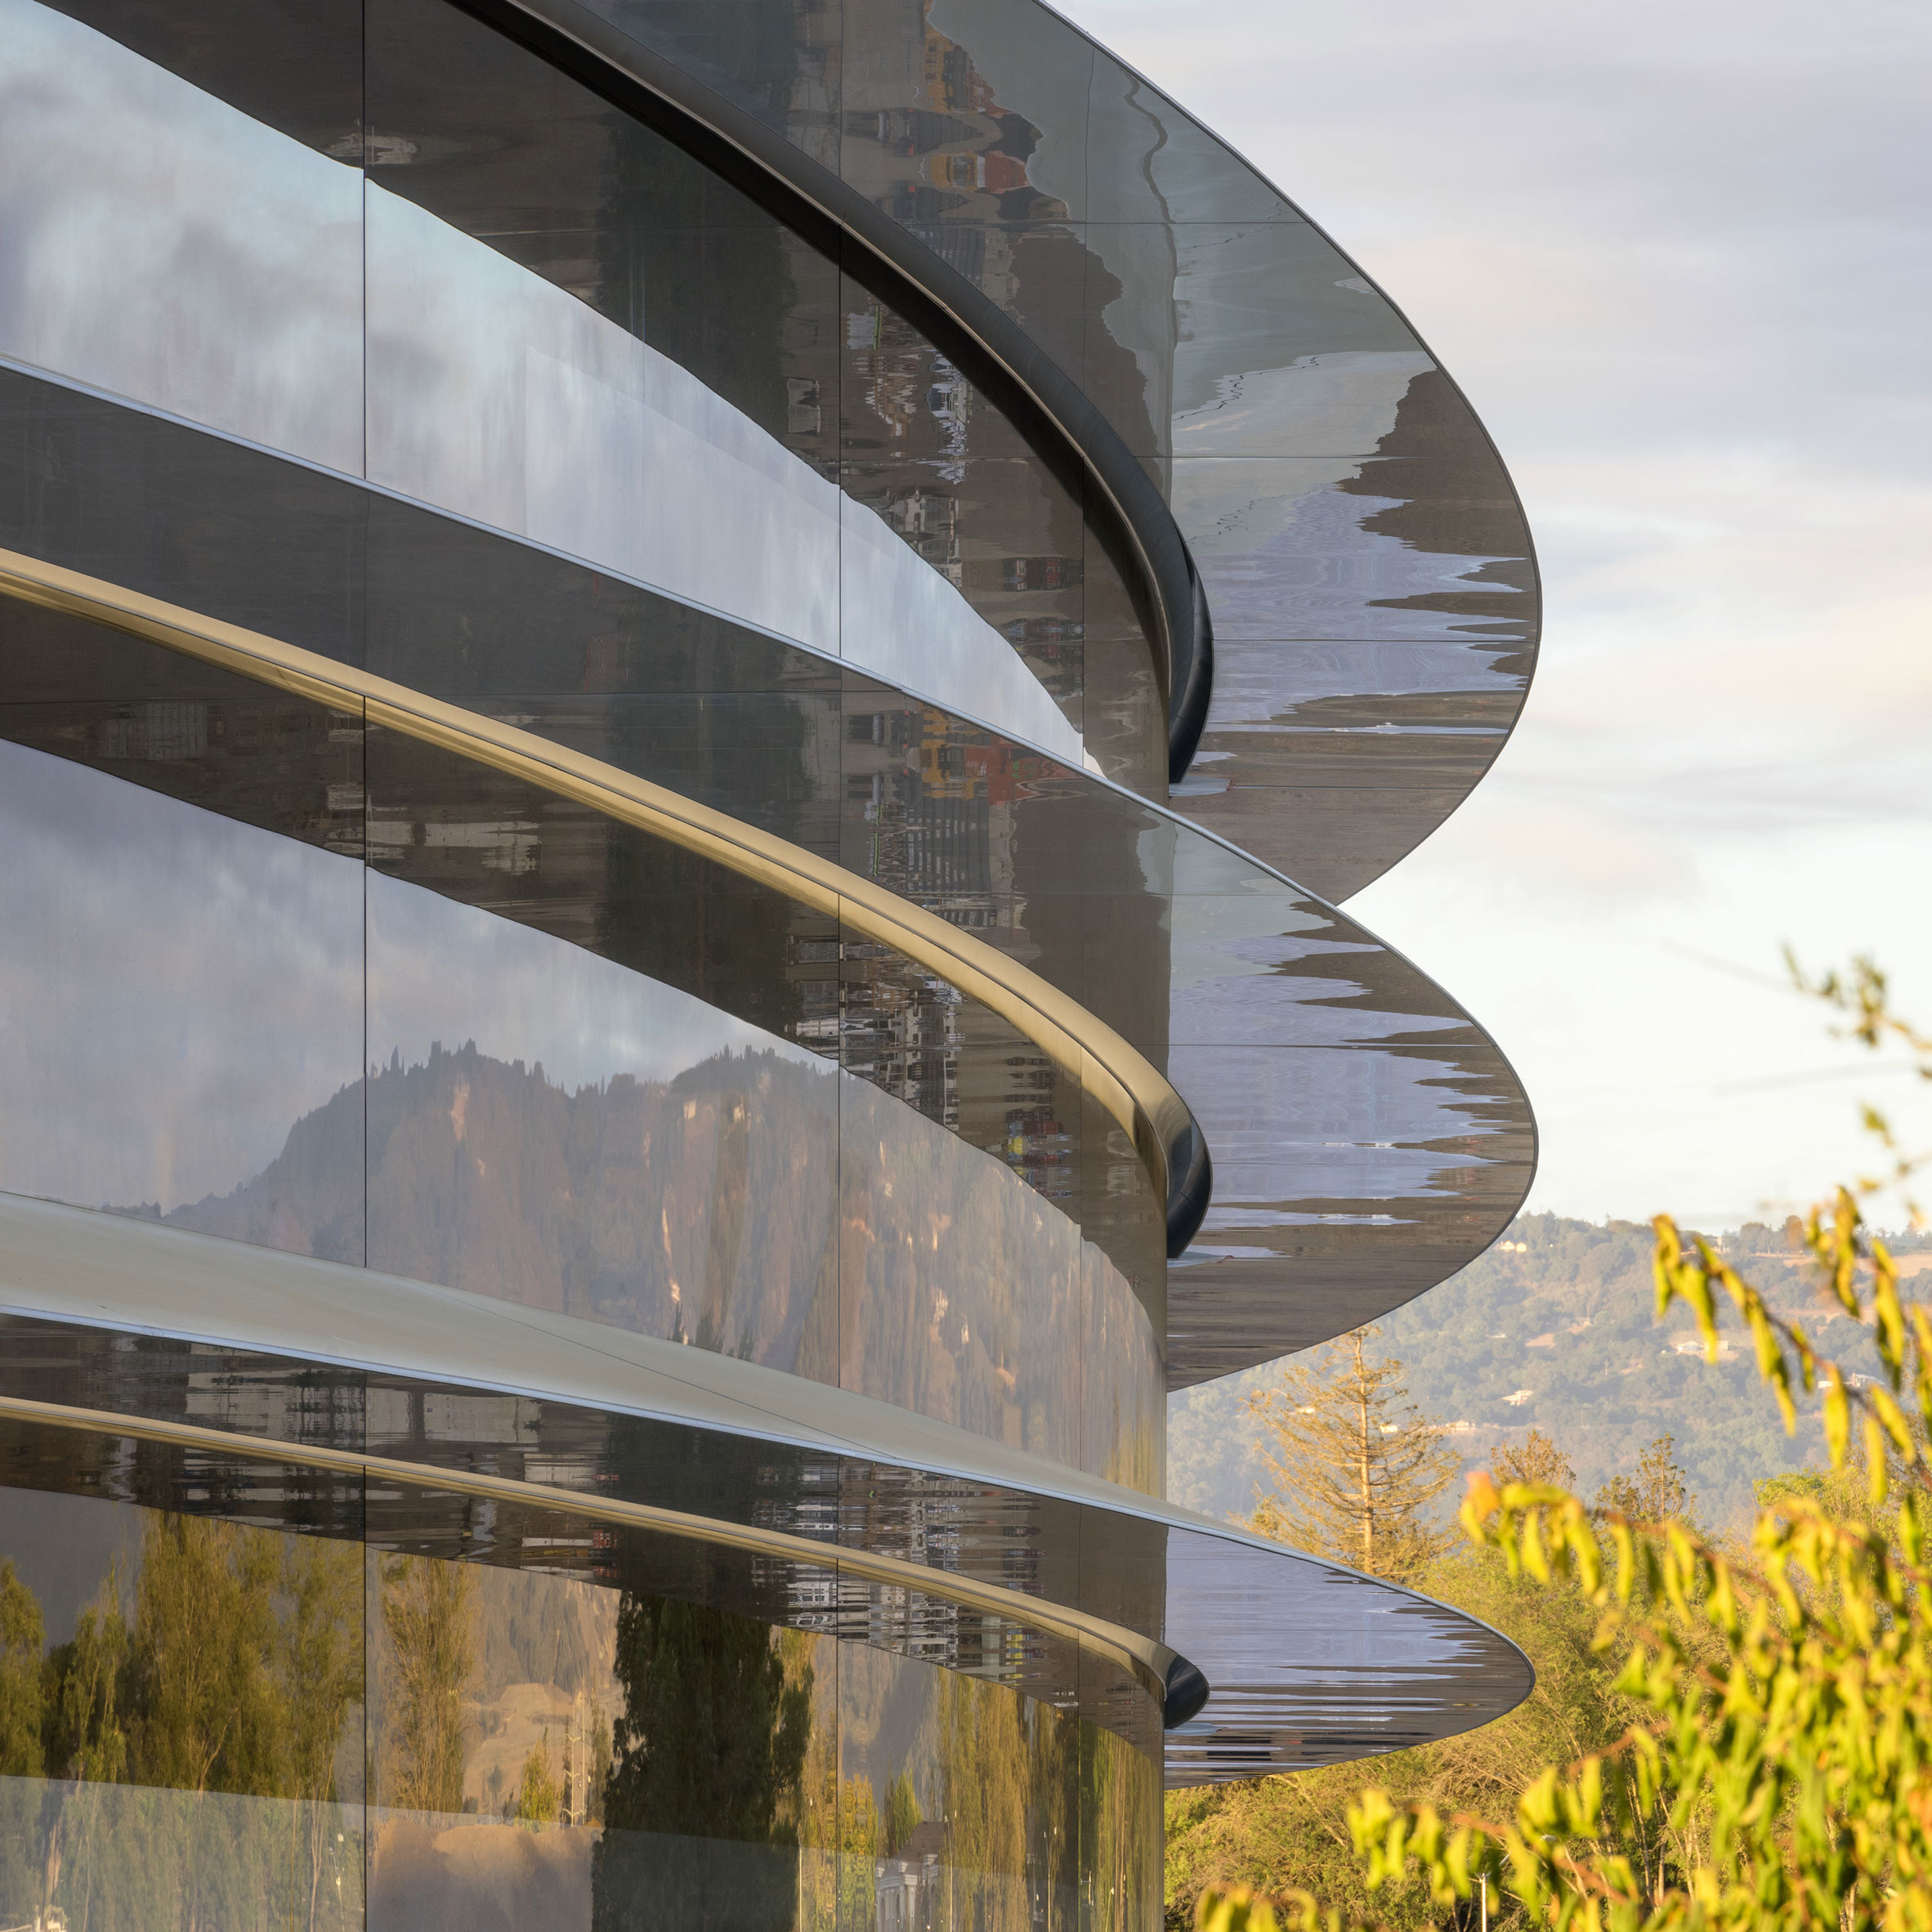 Foster + Partners' Apple Park set for April 2017 opening